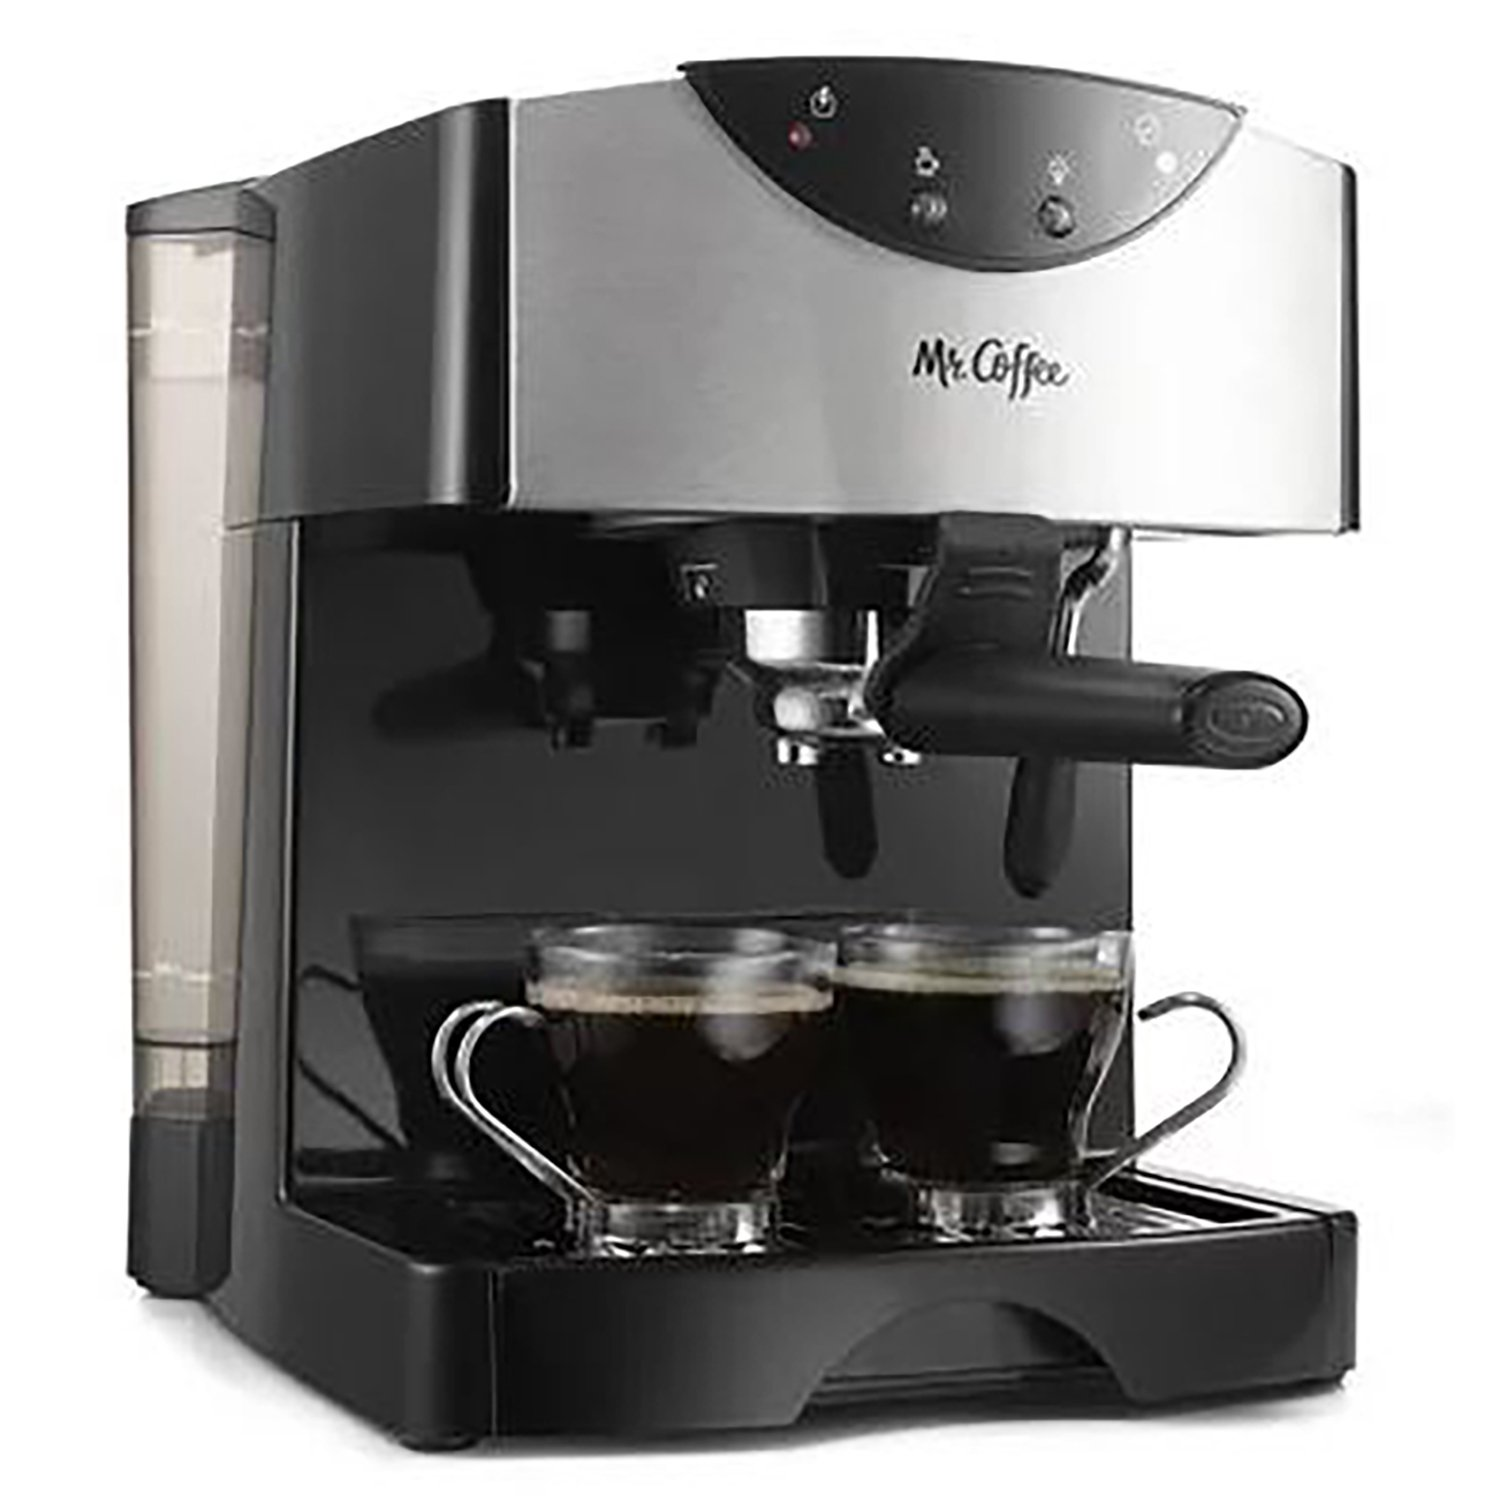 Mr. Coffee Cafe 15-Bar Pump Espresso & Cappuccino Maker (Certified Refurbished)